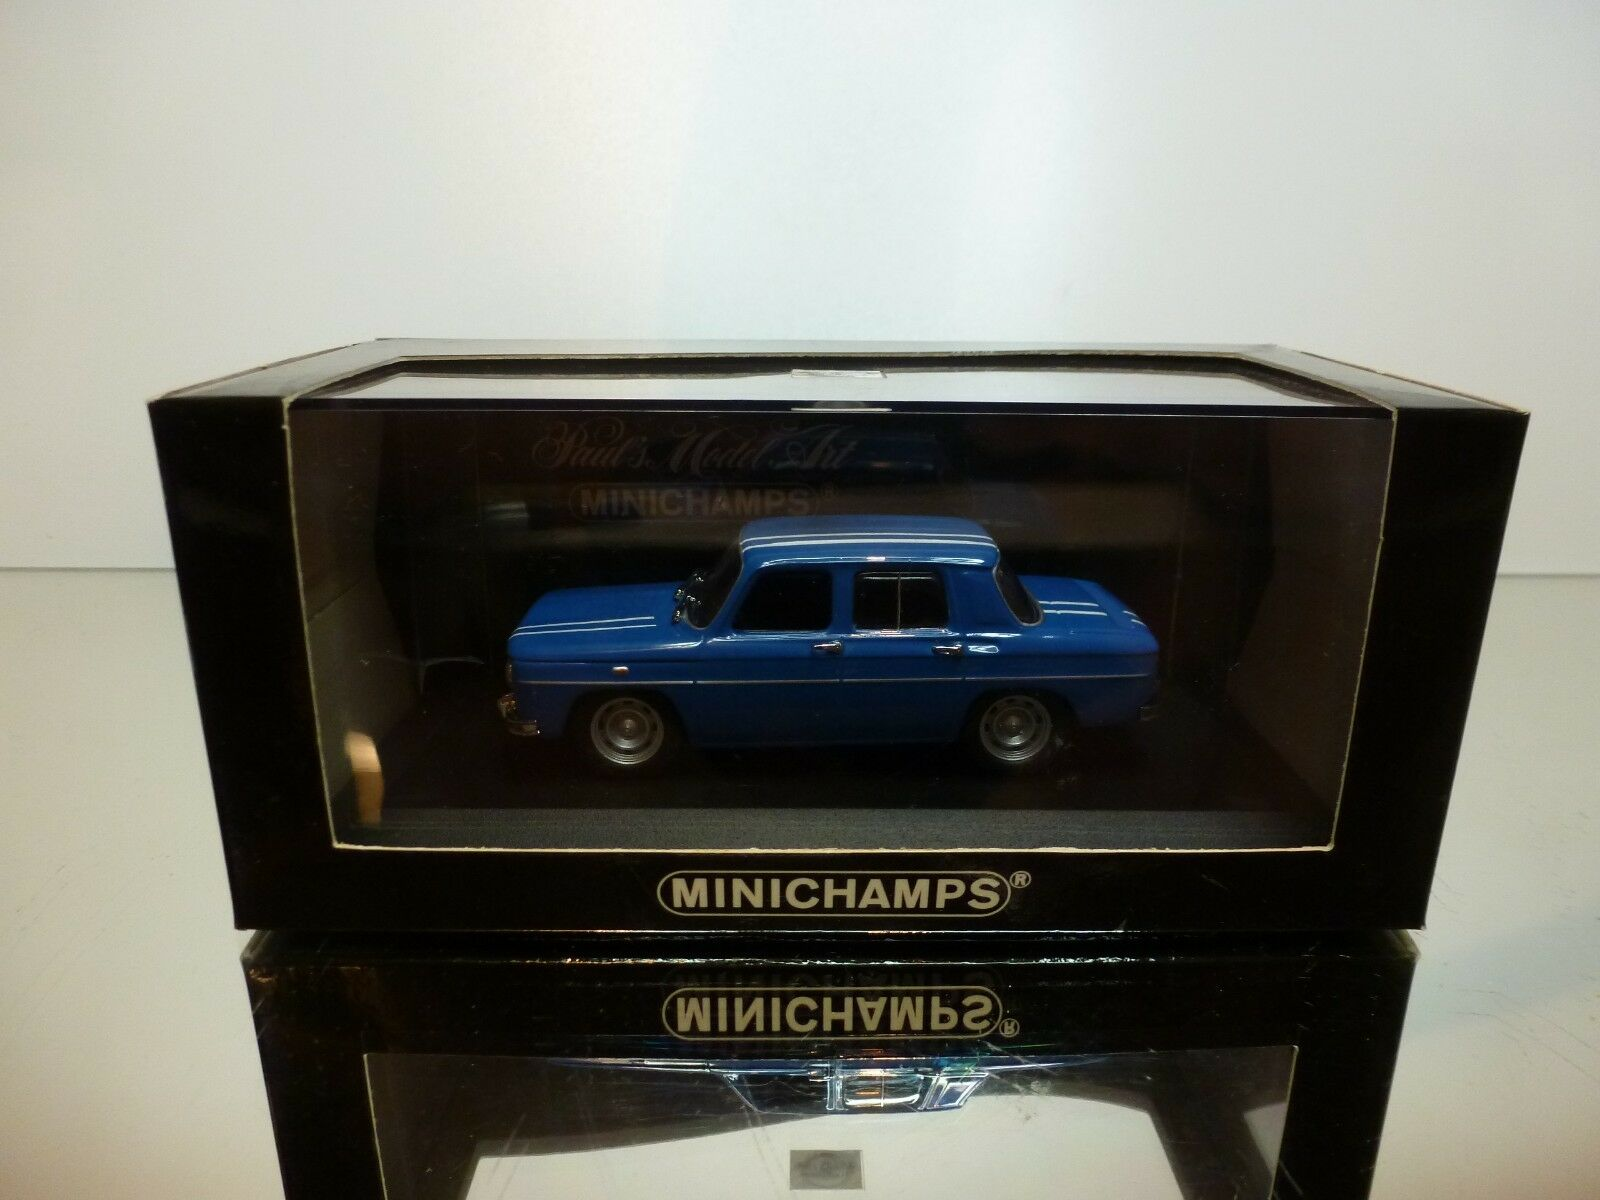 MINICHAMPS 113550 RENAULT R8 GORDINI 1964-1968 - blueE 1 43 - EXCELLENT IN BOX